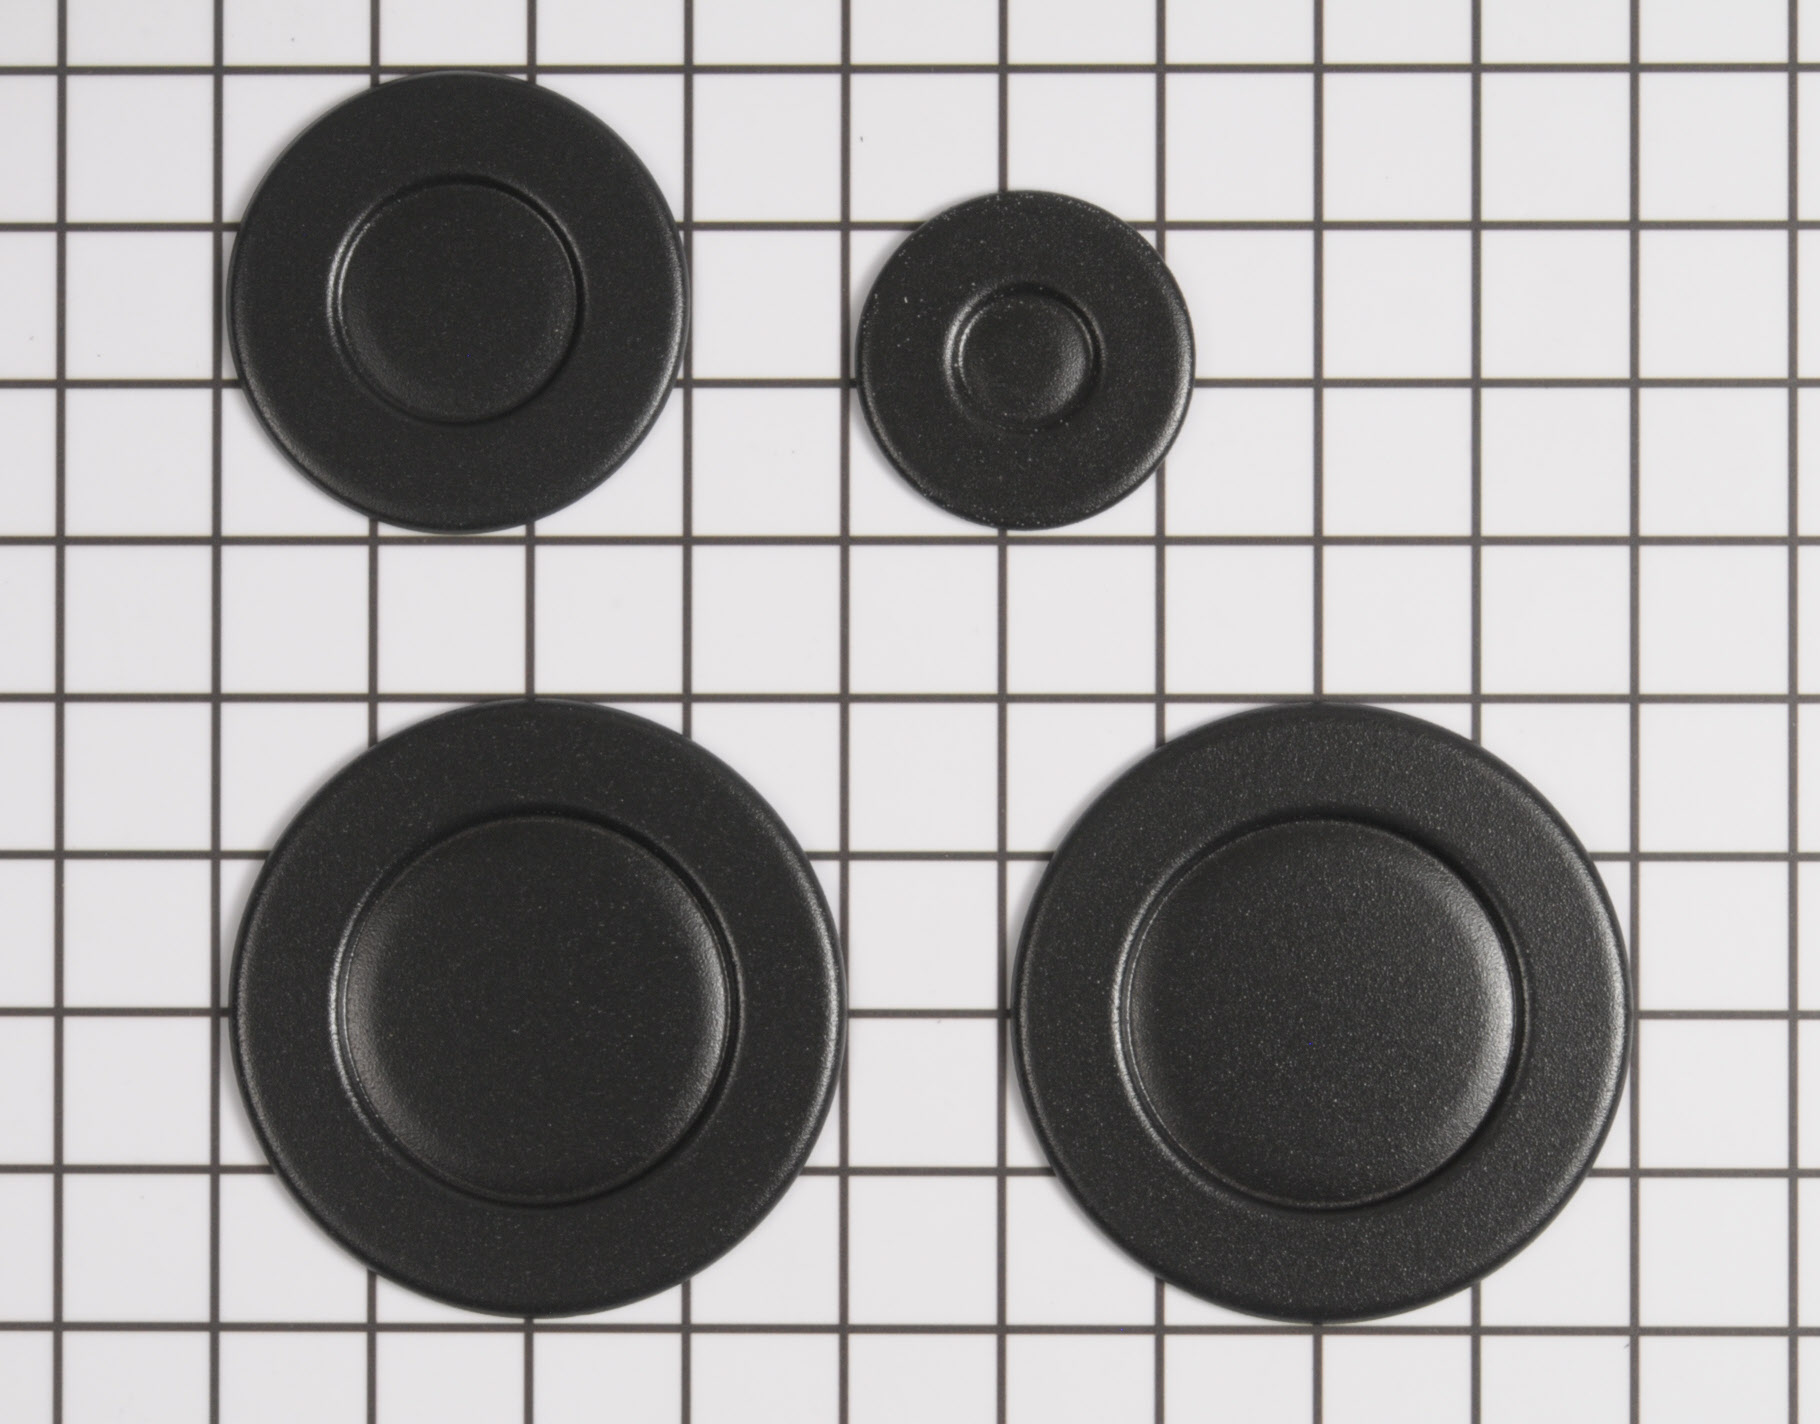 Maytag Range/Stove/Oven Part # WPW10597129 - Surface Burner Cap